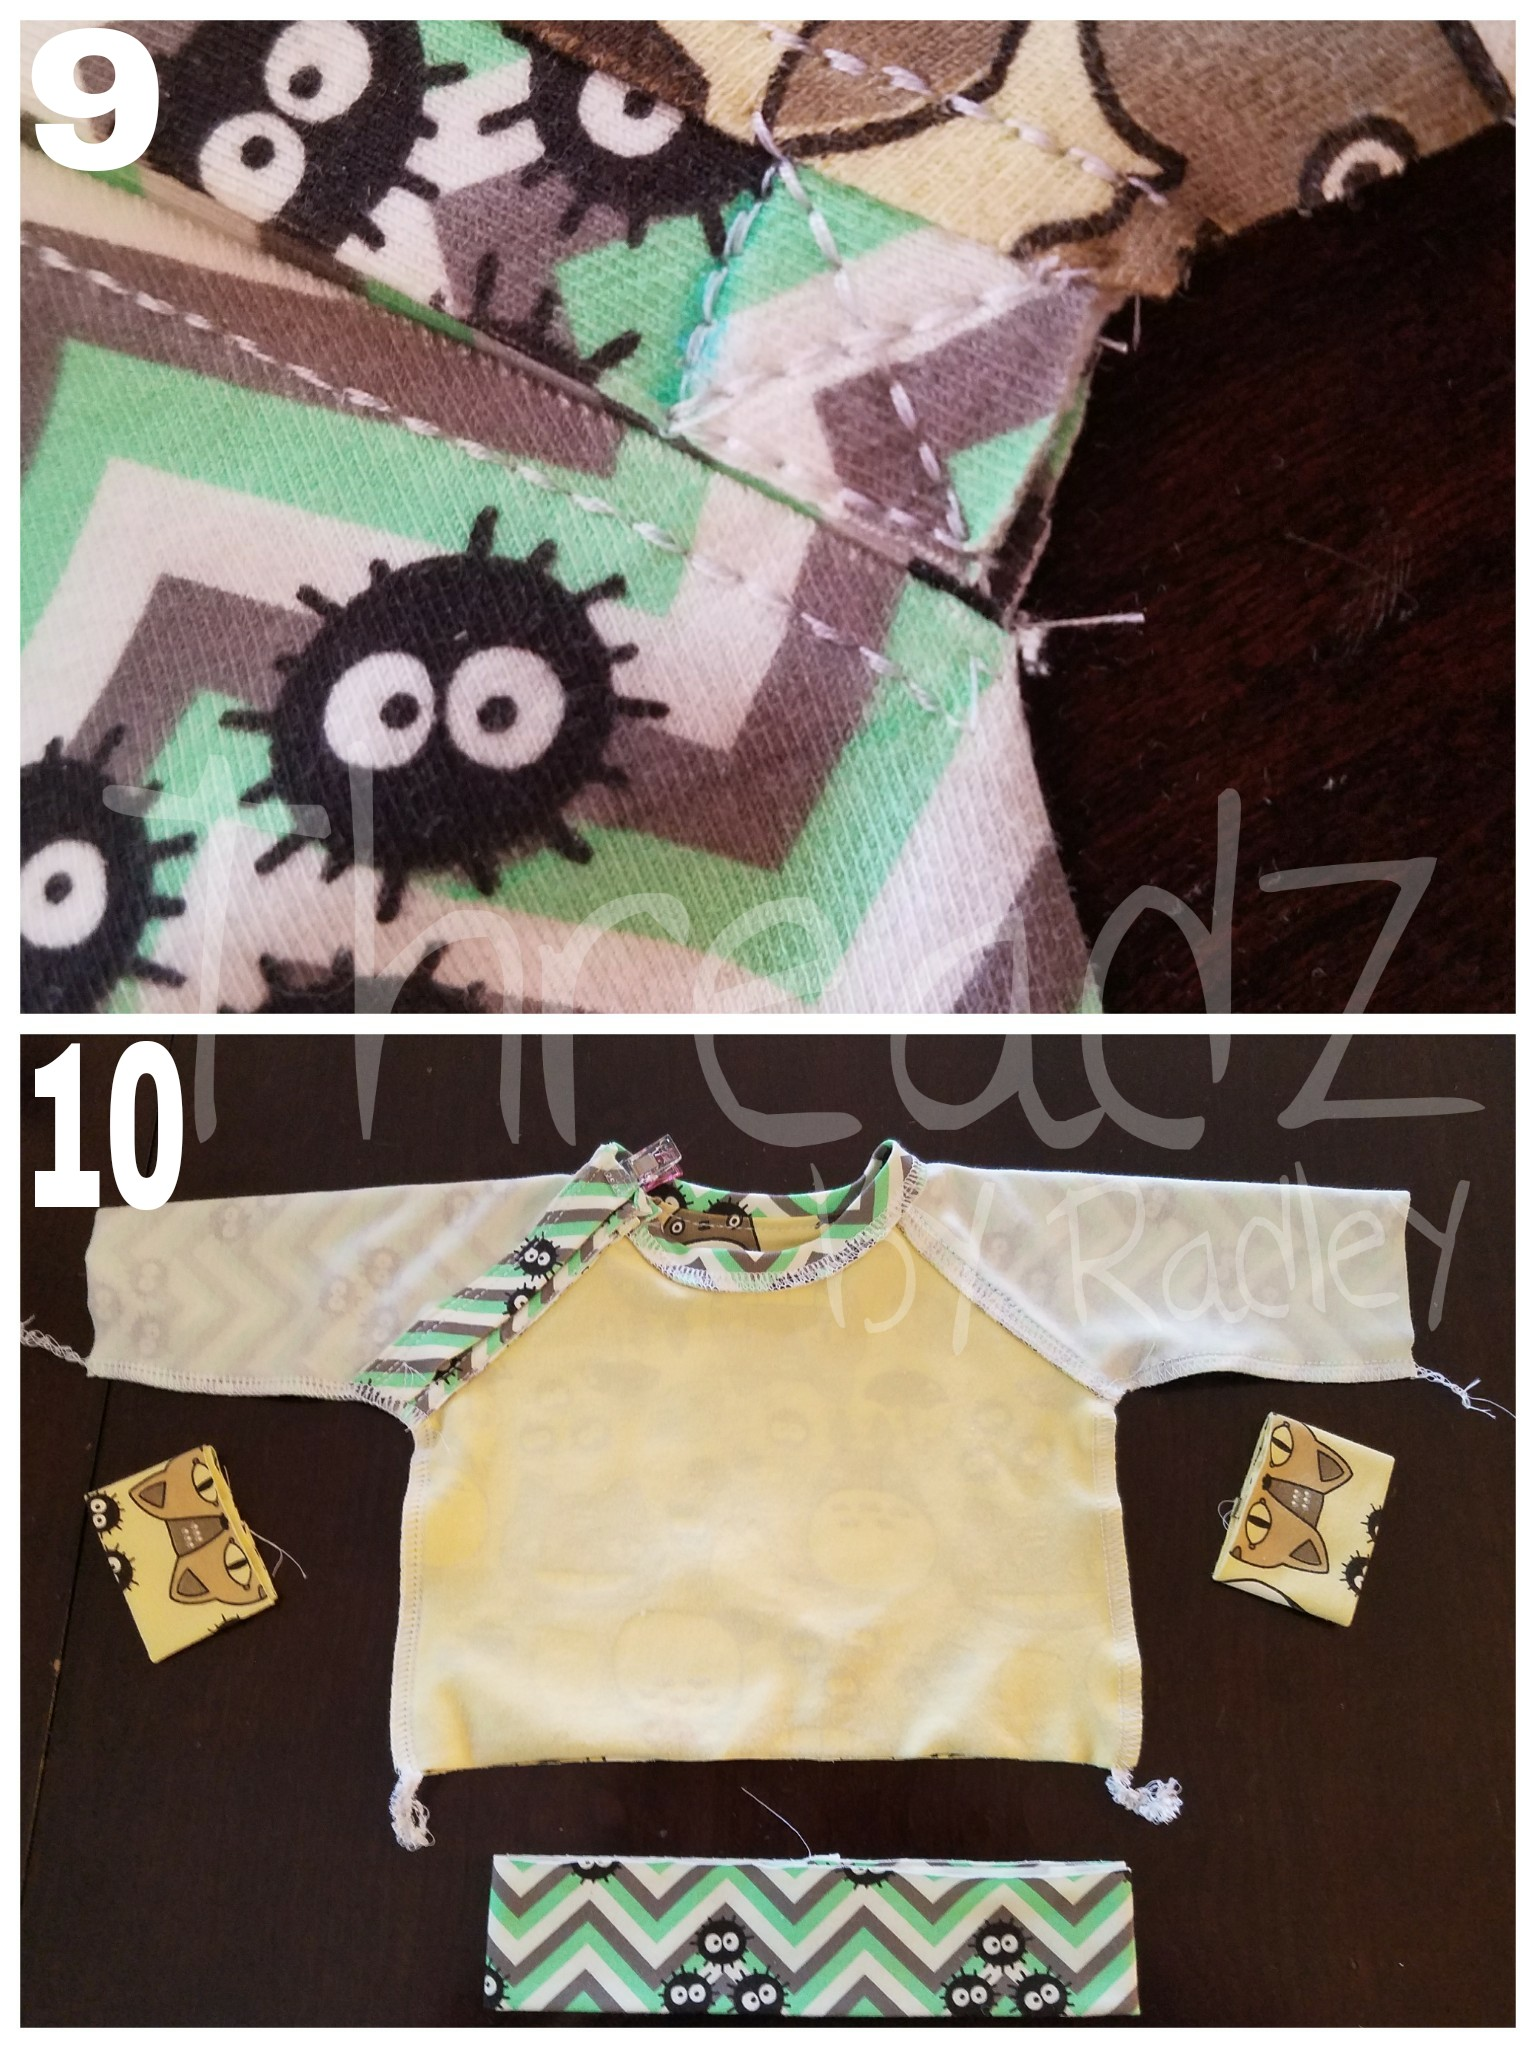 Tutorial: Adding Snaps to the Peek-a-boo Pattern Shop's